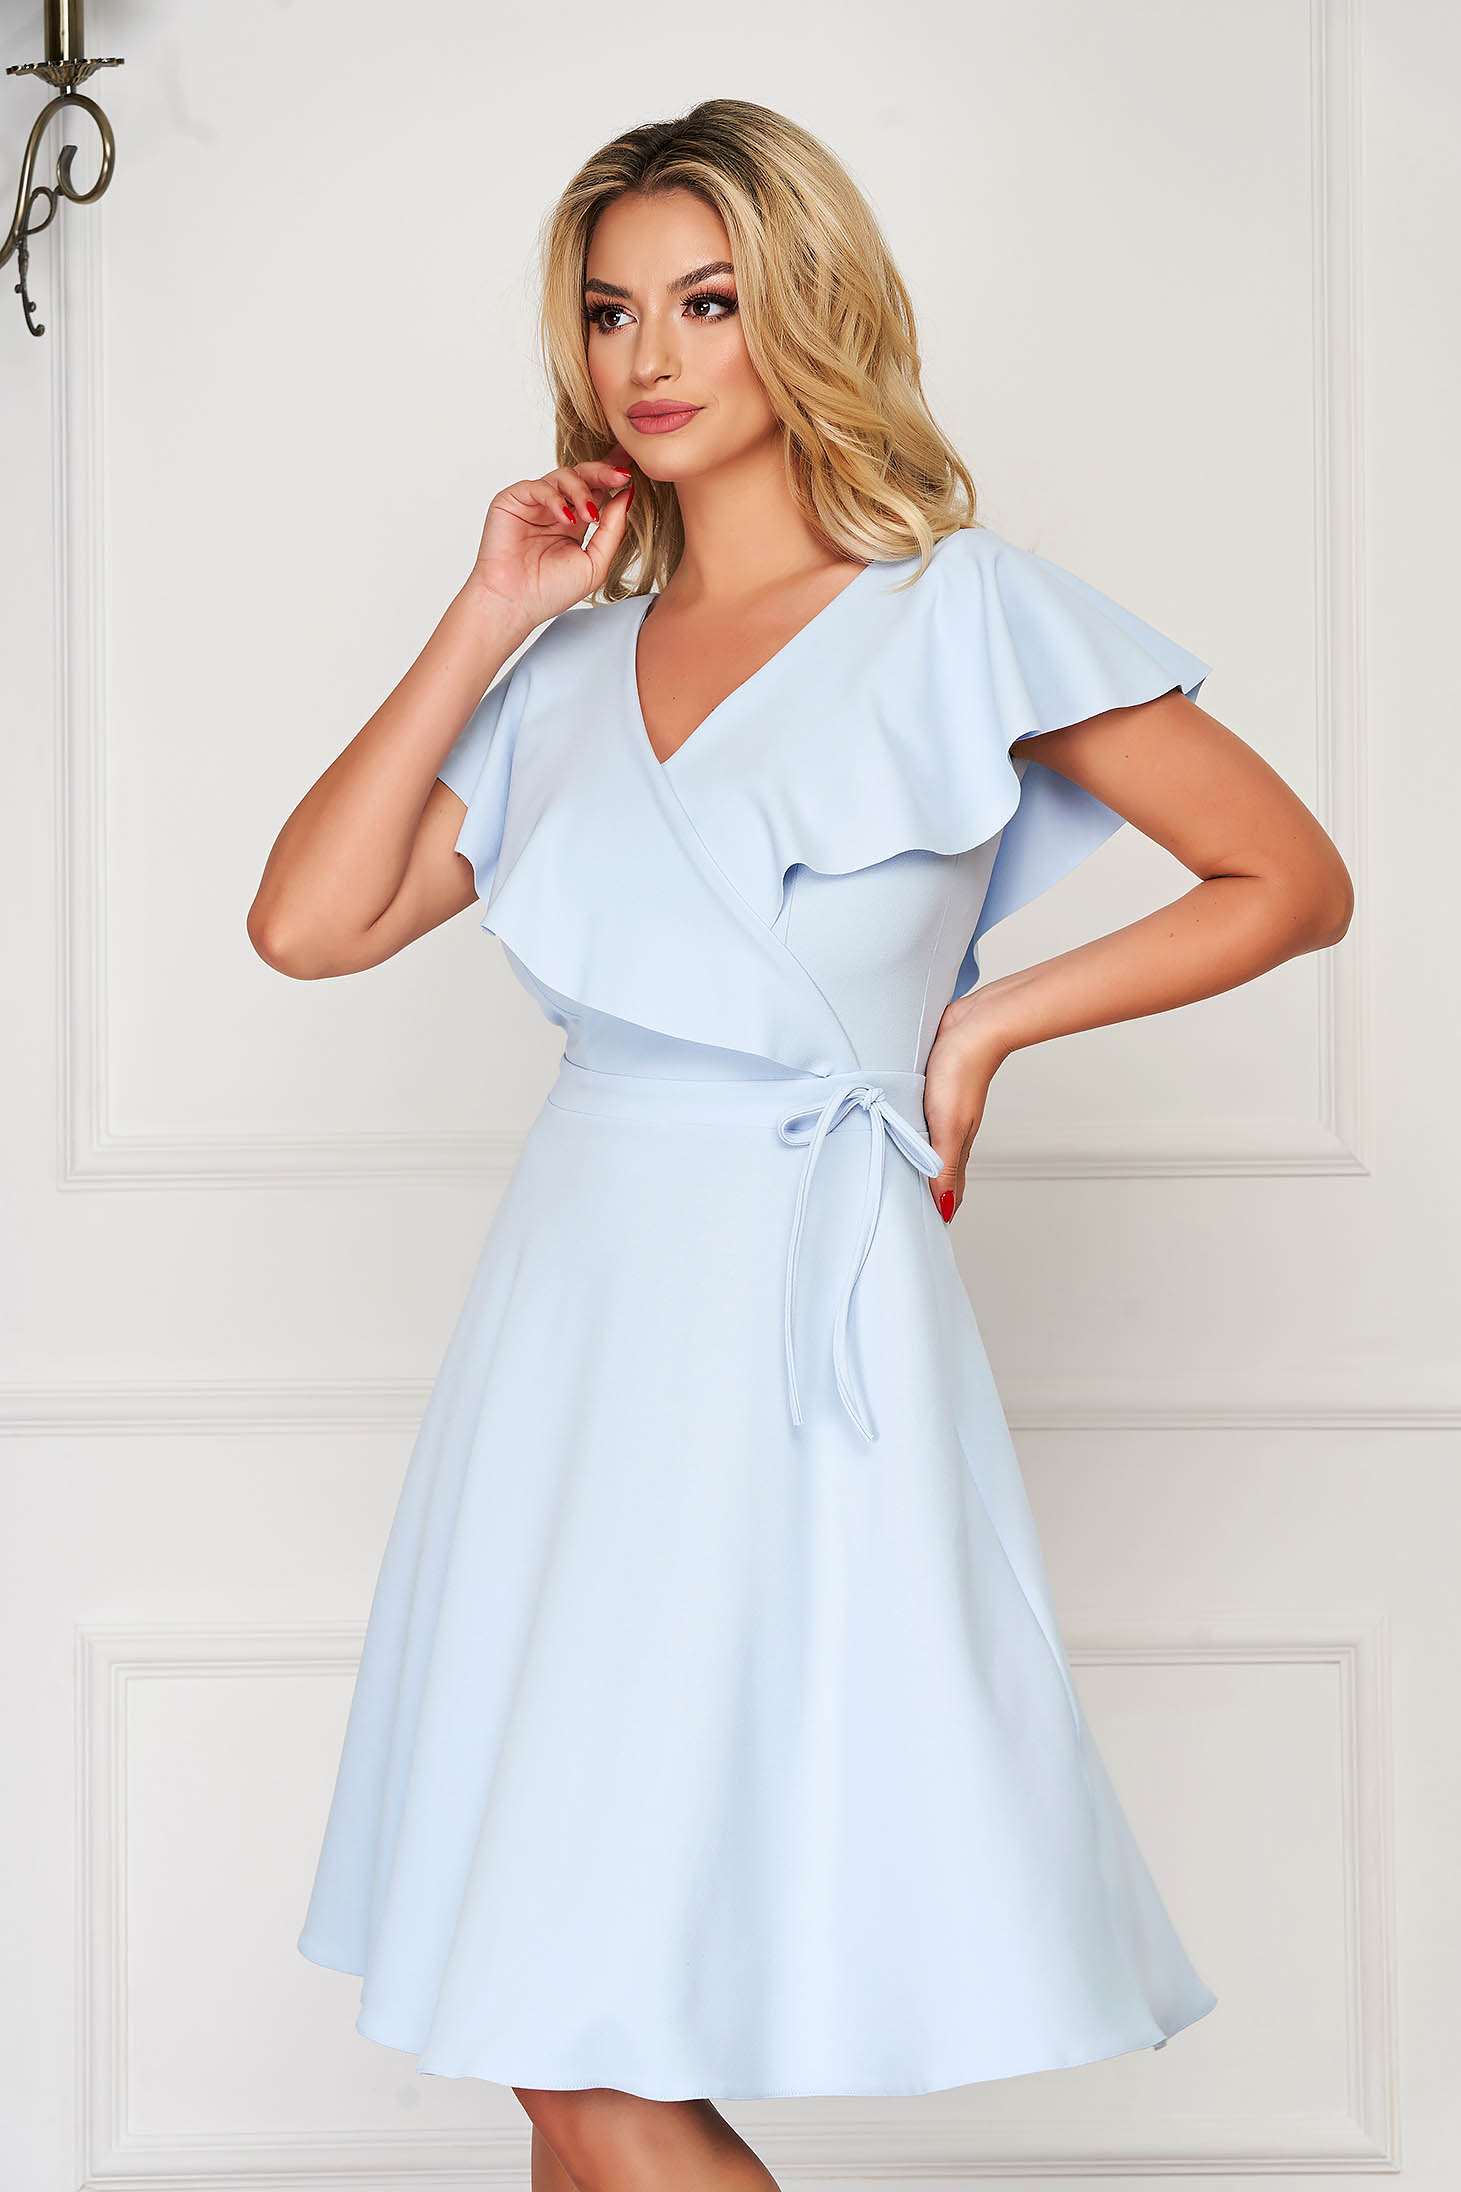 StarShinerS lightblue dress daily short cut cloche scuba with v-neckline without clothing frilly trim around cleavage line